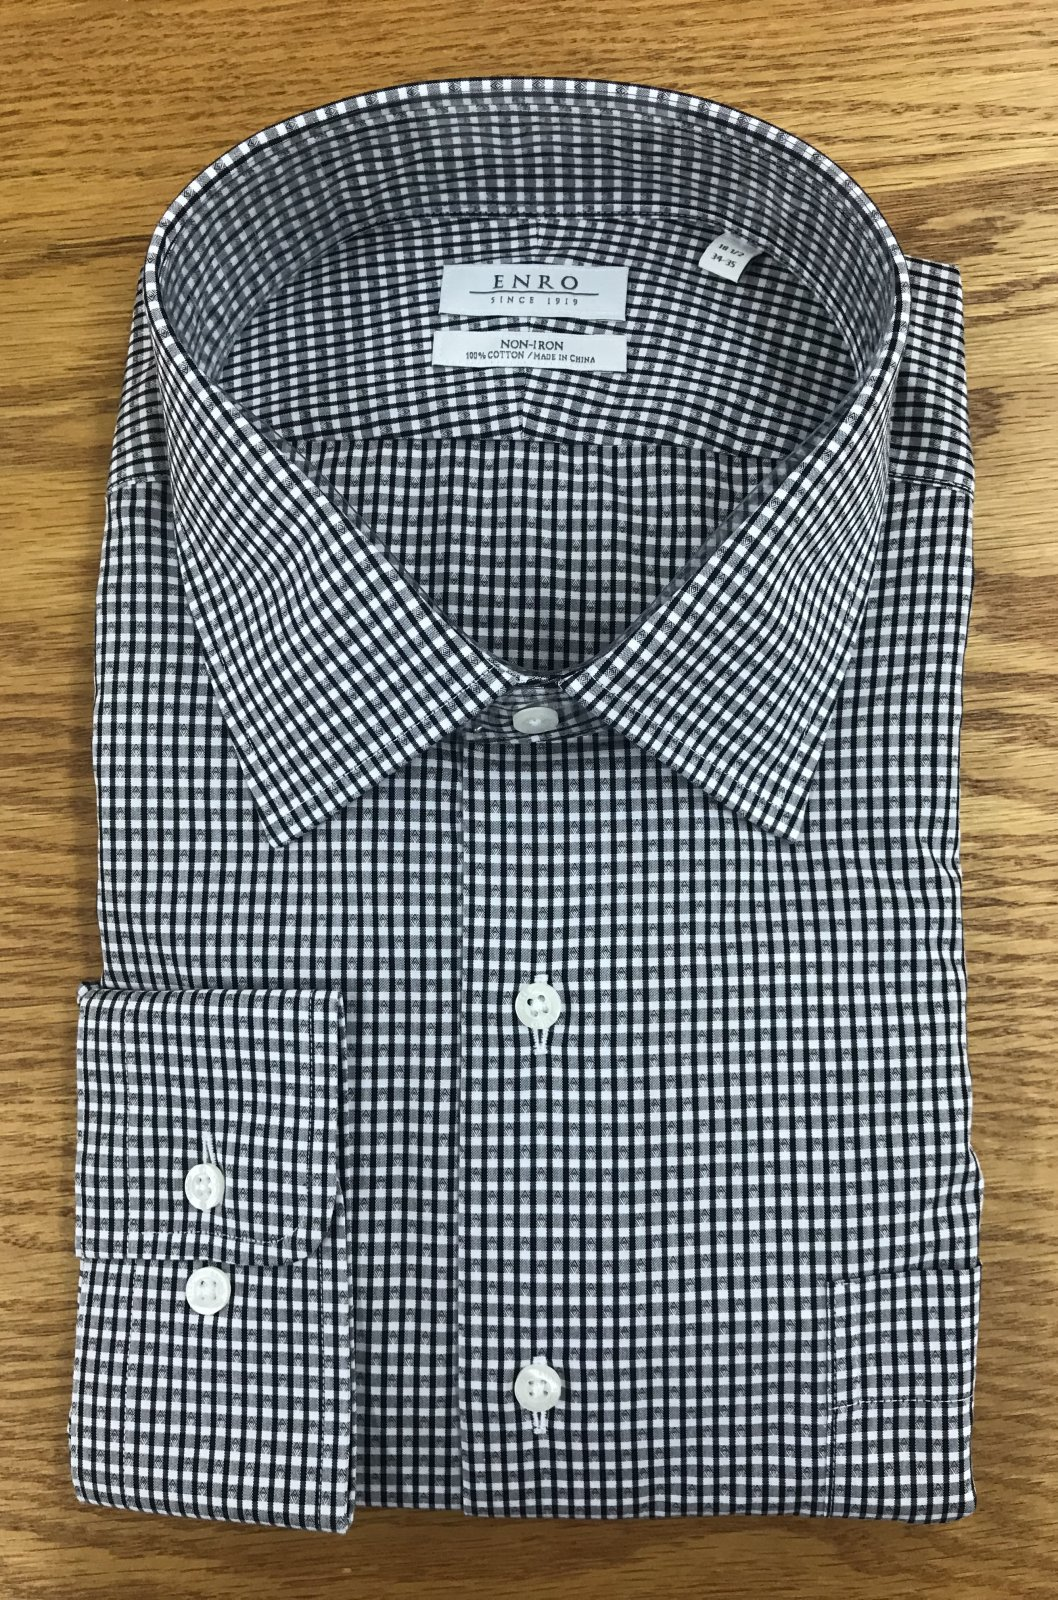 Enro LS Dress Shirt 178439